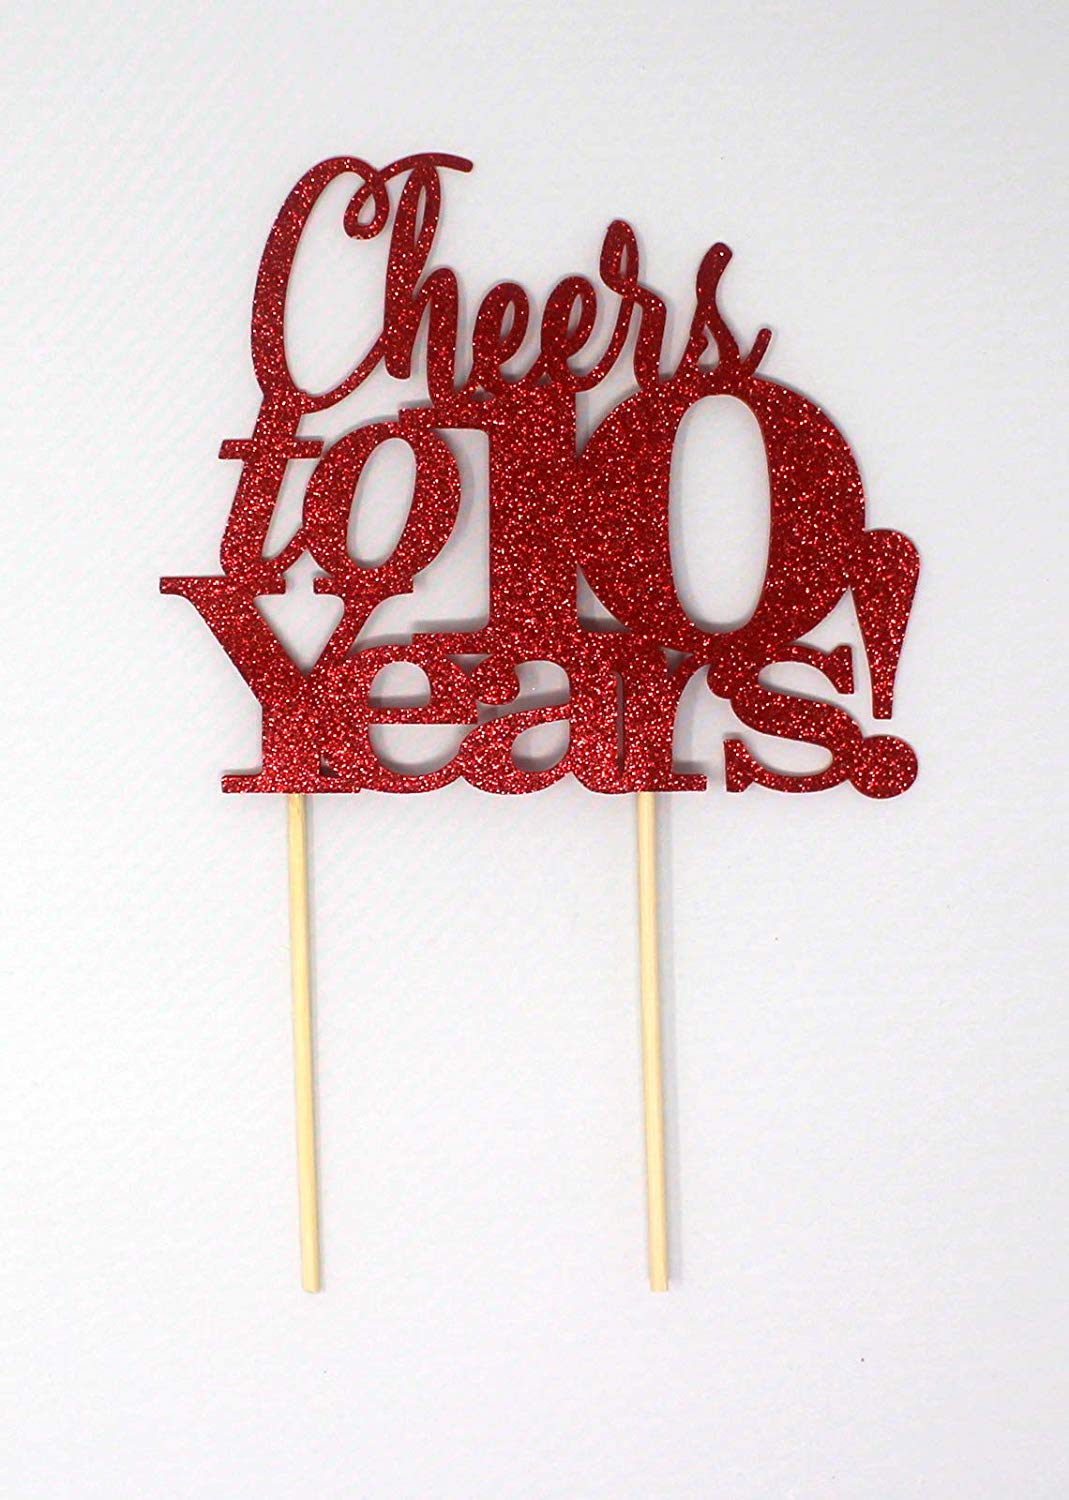 All About Details Cheers to 10 Years! Cake Topper, 1PC, 10th anniversary, retirement (Red)